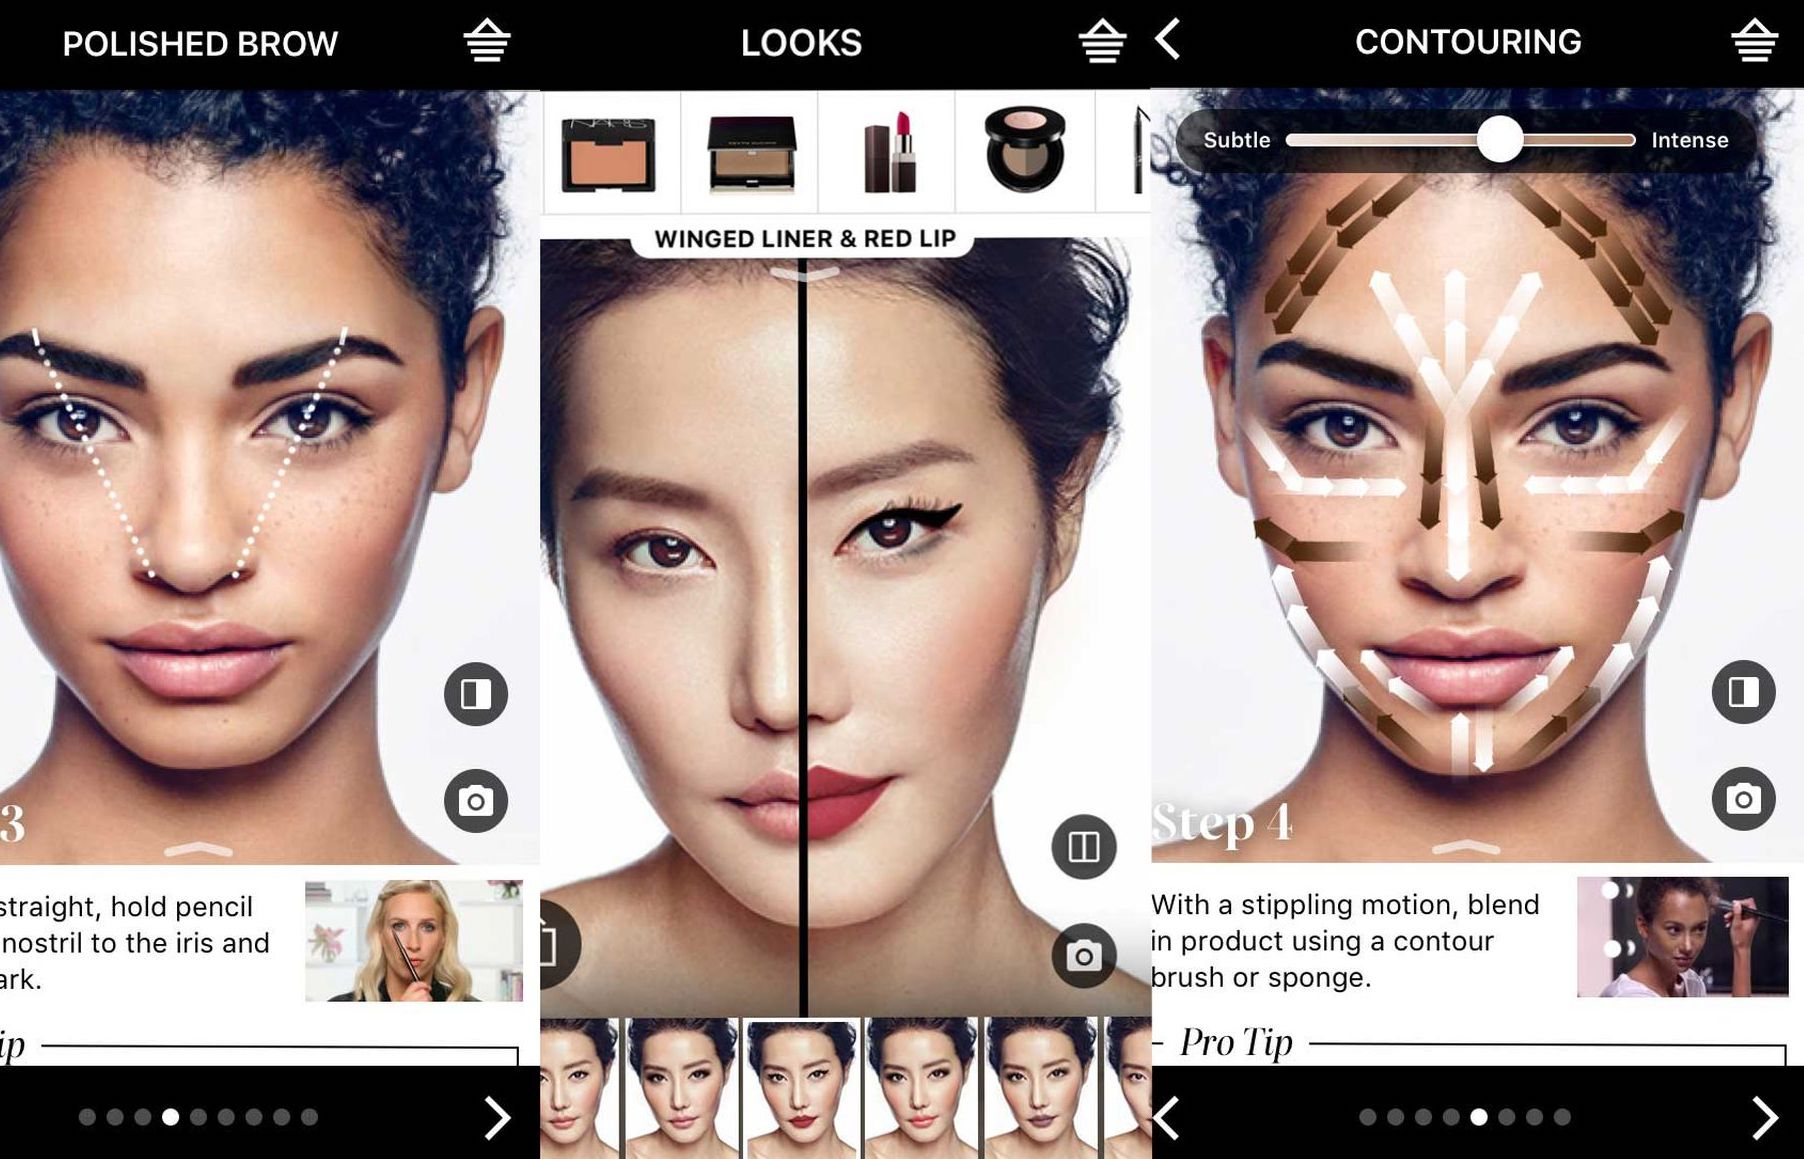 Sephora's virtual try-on tutorials